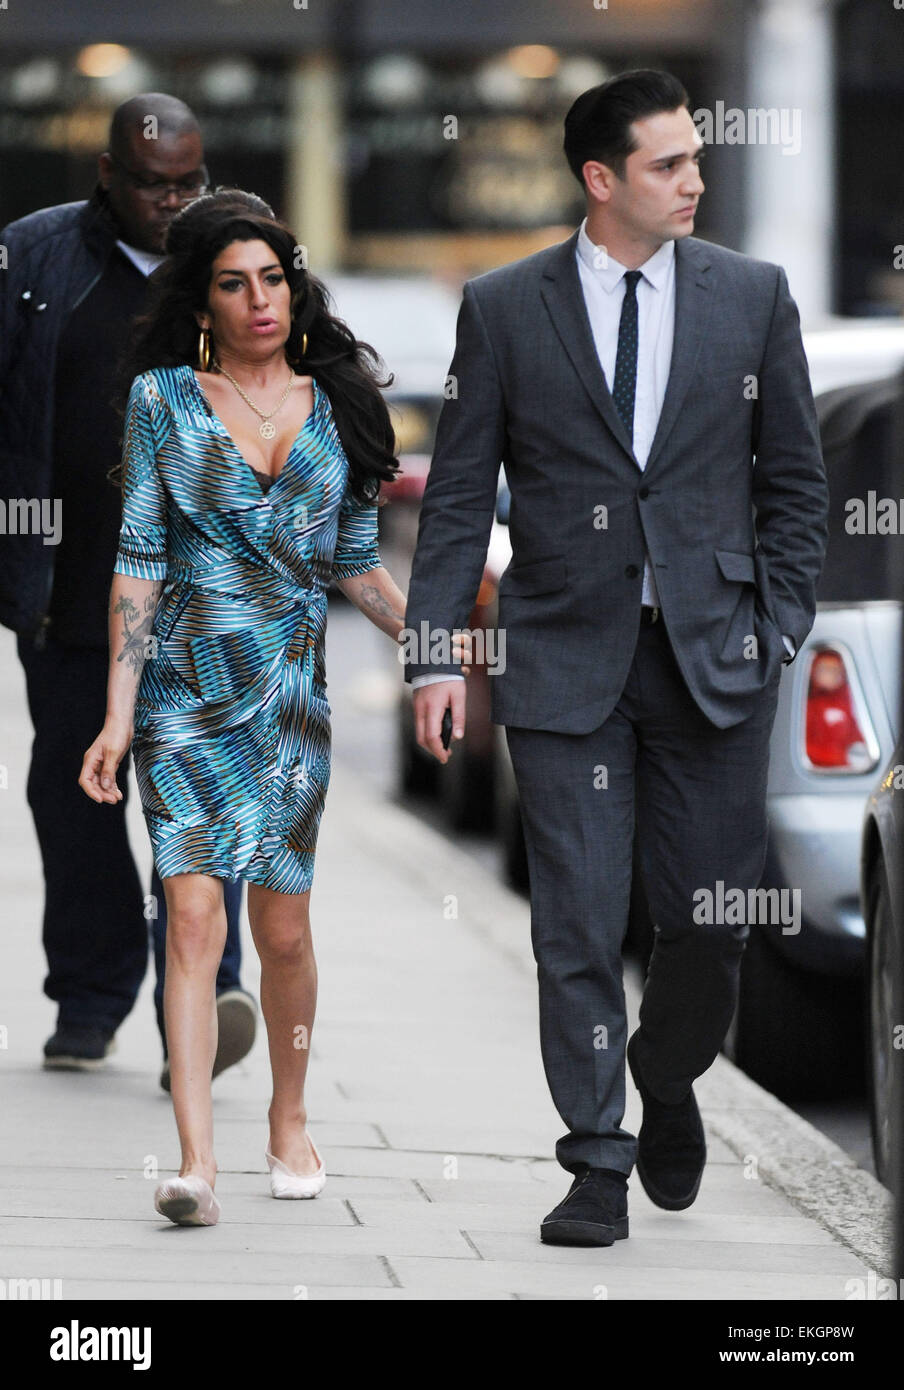 Amy Winehouse Proves Once And For All That Her Marriage To Blake Fielder Civil Is Finally Over As Her And Her New Man British Film Director Reg Traviss Step Out For The First